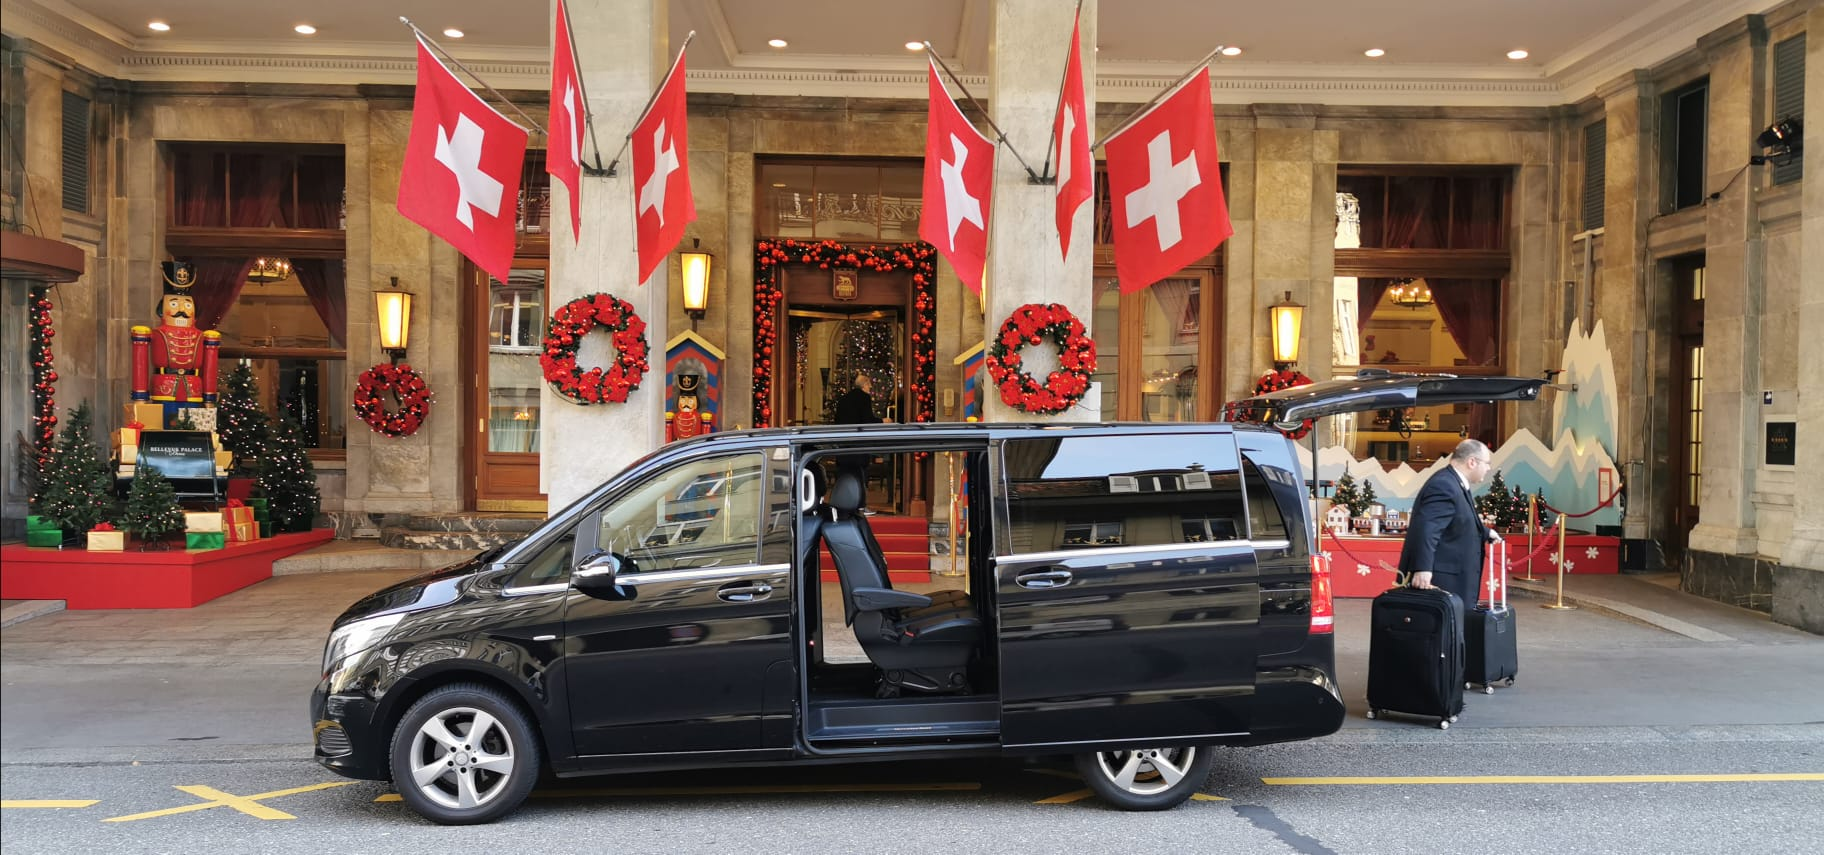 traserbas executive mercedes car ready for zurich airport transfer